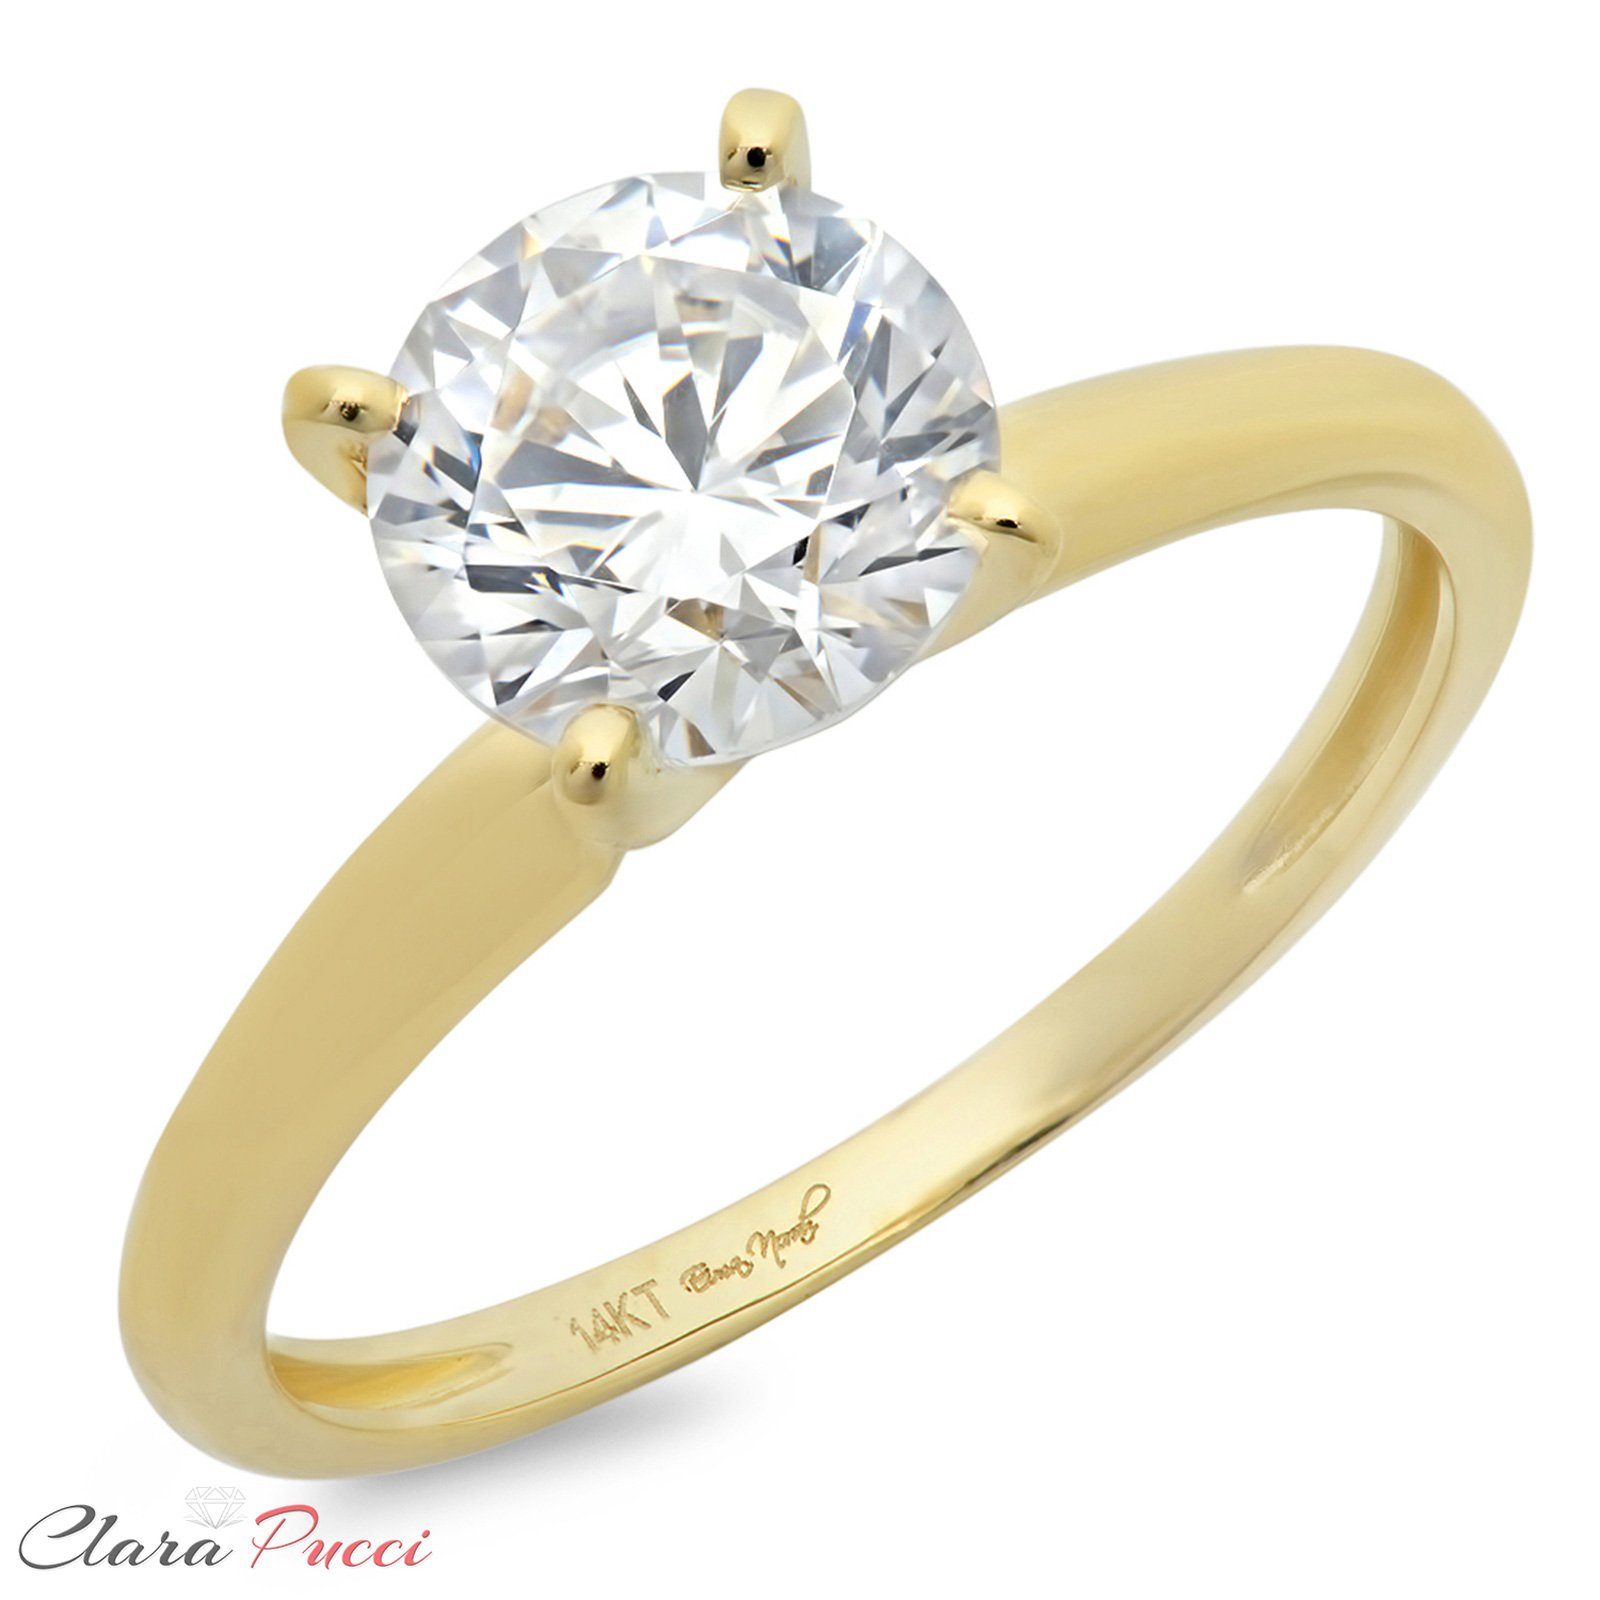 Clara Pucci 2.0 CT Brilliant Round Cut Simulated Diamond CZ Designer 4-Prong Solitaire Anniversary Promise Bridal Wedding Ring Solid 14k Yellow Gold by Clara Pucci (Image #2)